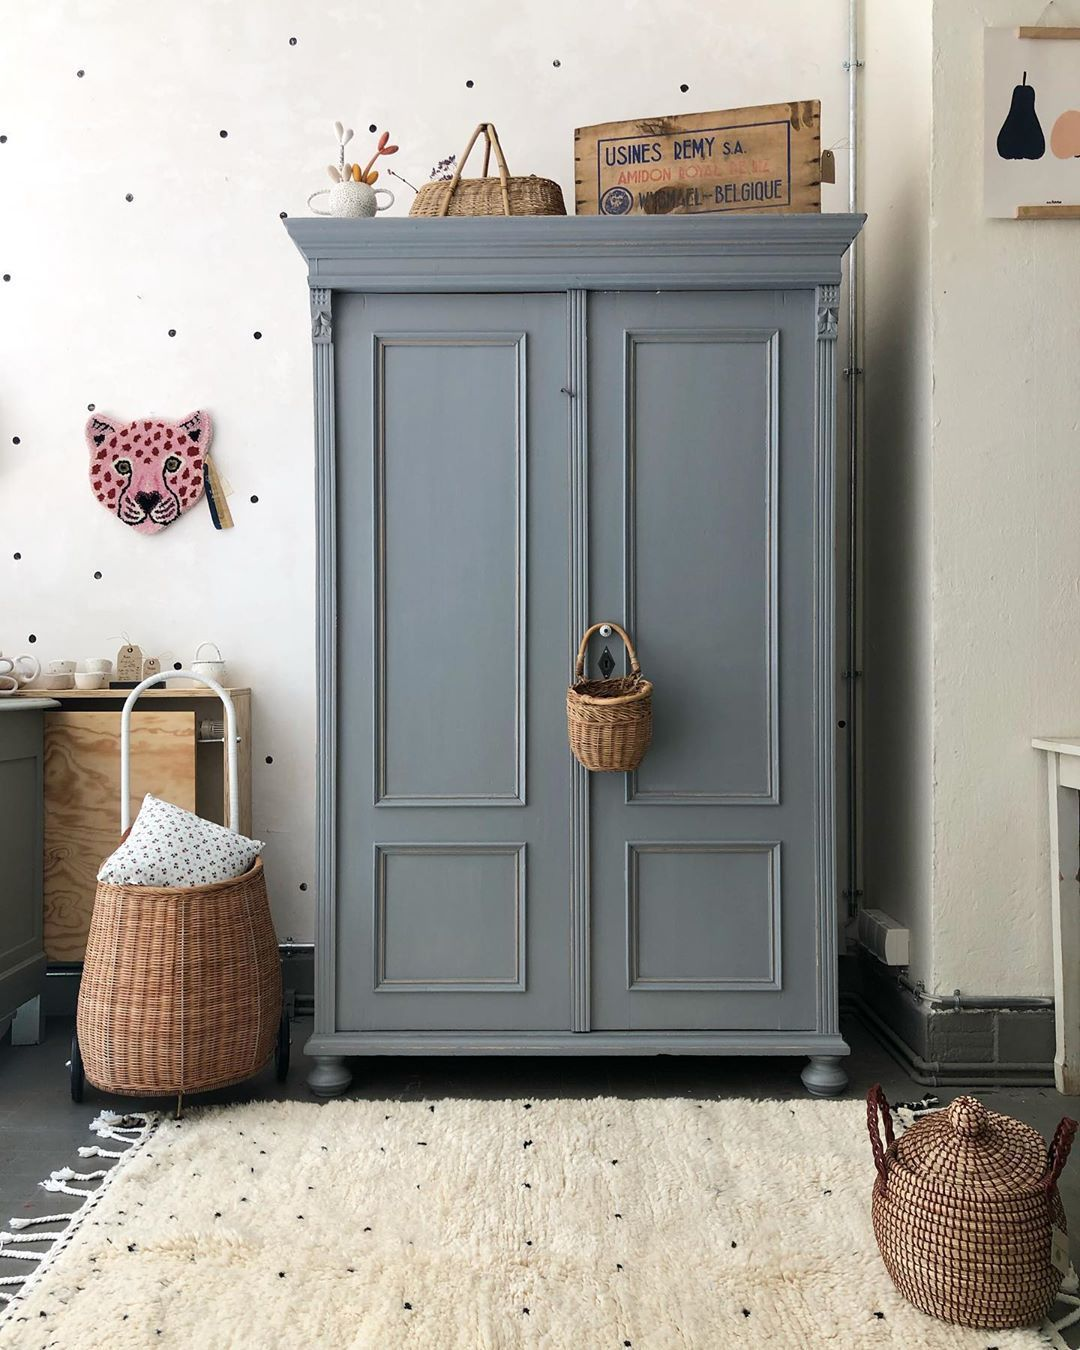 Tropical Decor Armoire Makeover Before And After Upcycled Armoire Chalk Paint Armoire Tv Armoire Armoire In 2020 Antique Wardrobe Armoire Makeover Painted Wardrobe